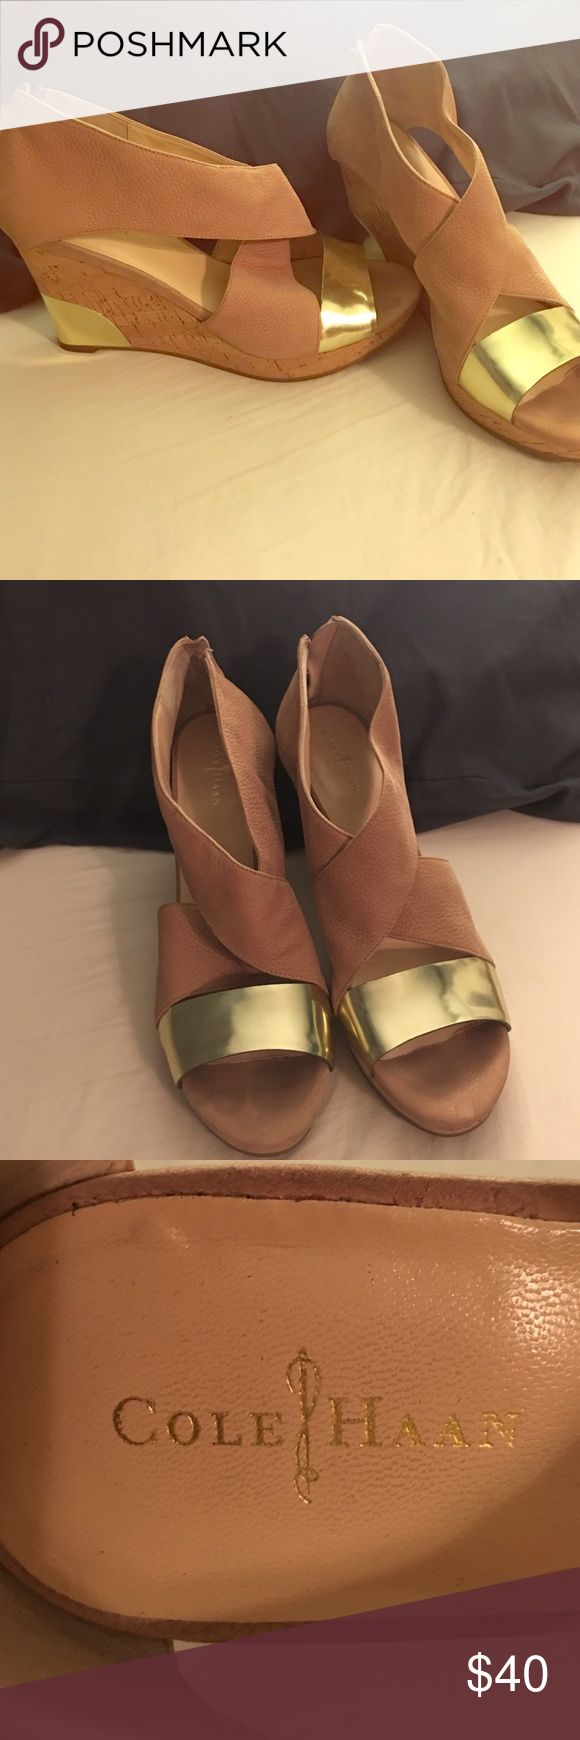 Cole Hann Gold and Tan Wedges Gold and Tan Cole Hann Wedges Size 9 Cole Haan Shoes Wedges